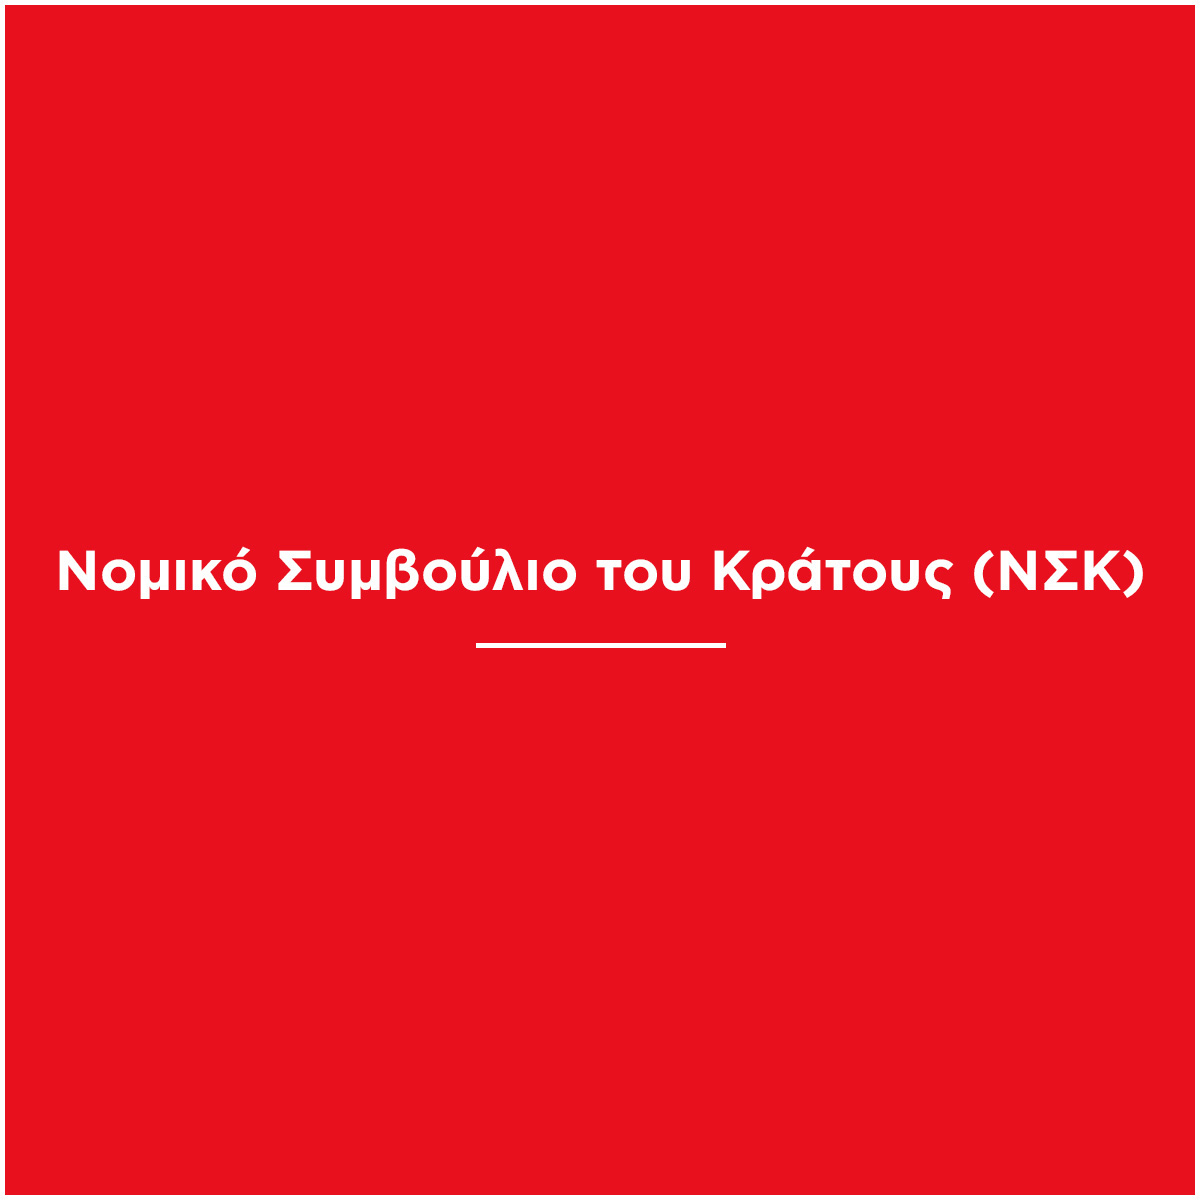 nsk_red